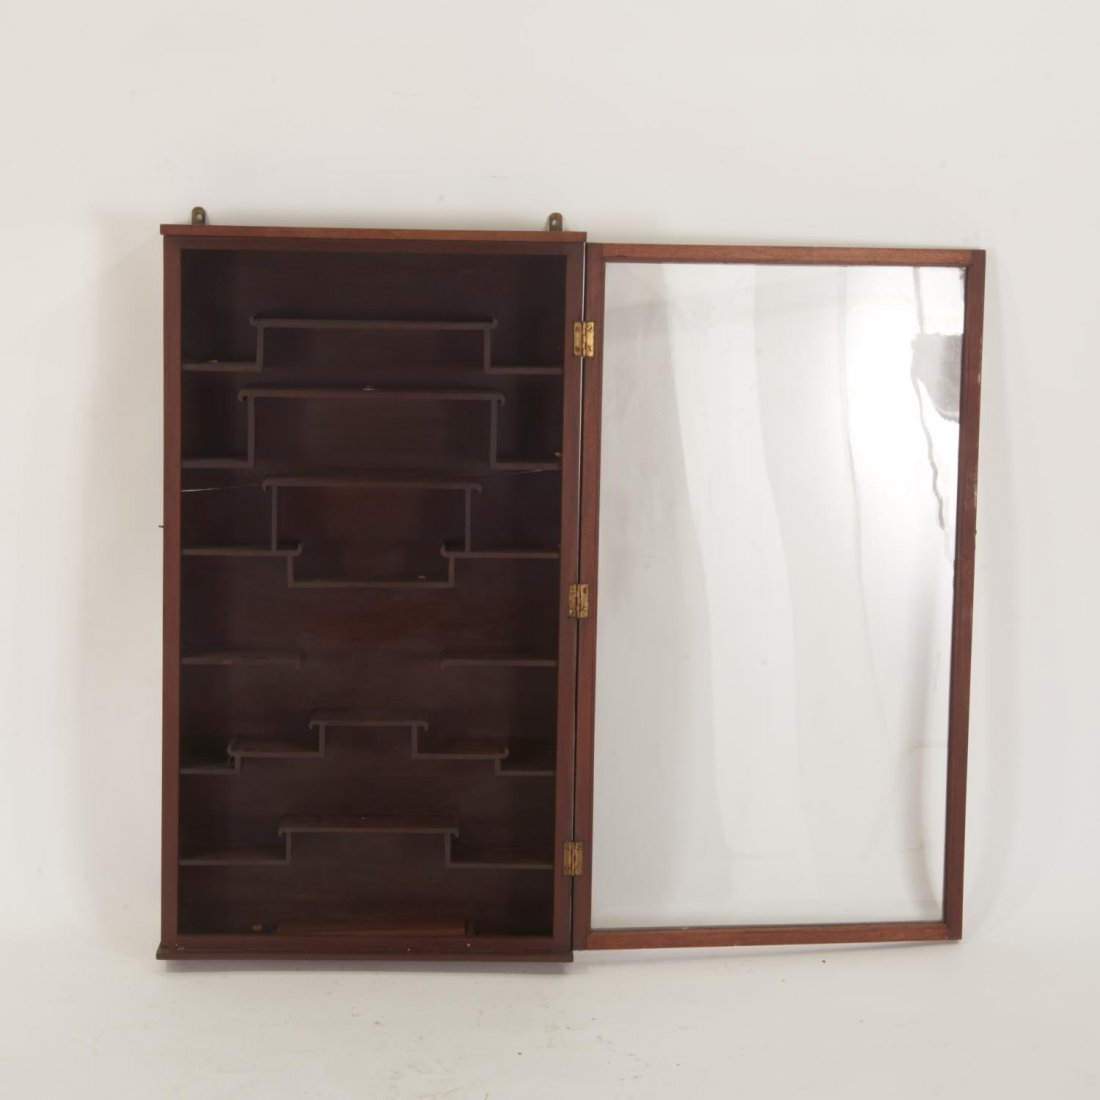 Chinese hardwood snuff bottle wall curio cabinet - 2